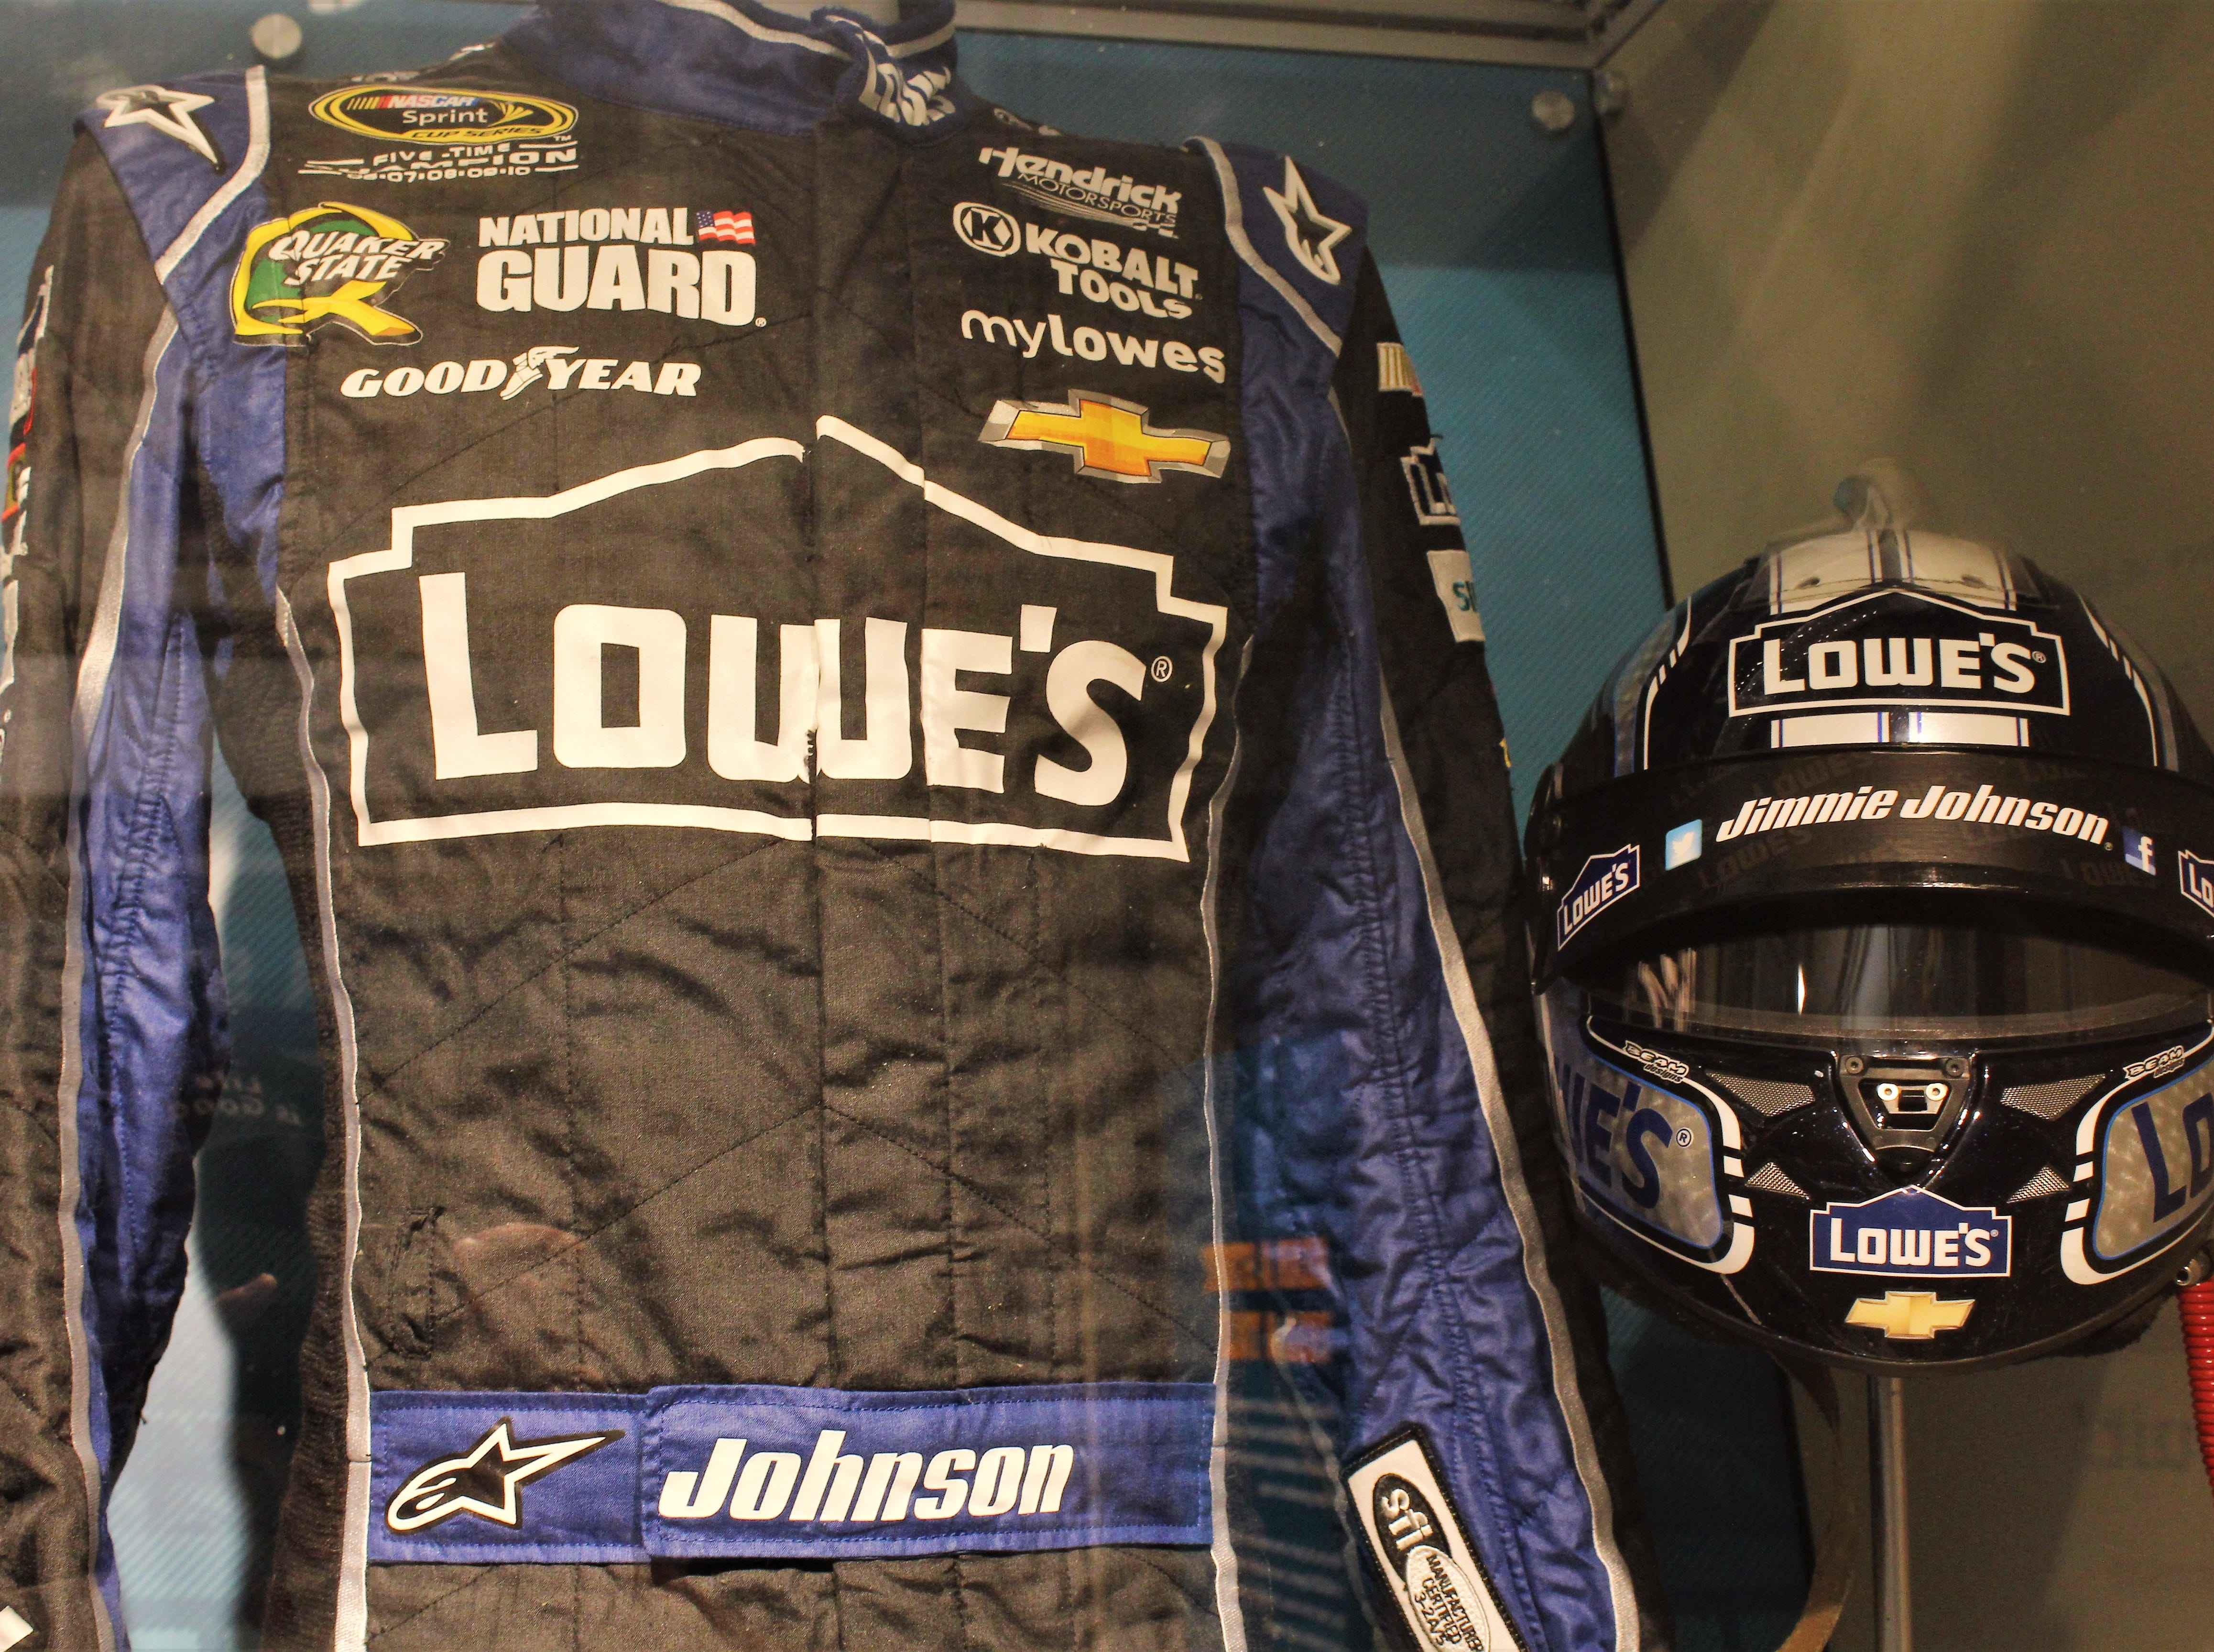 Gear on display at the NASCAR Hall of Fame includes driver suits and helmets.